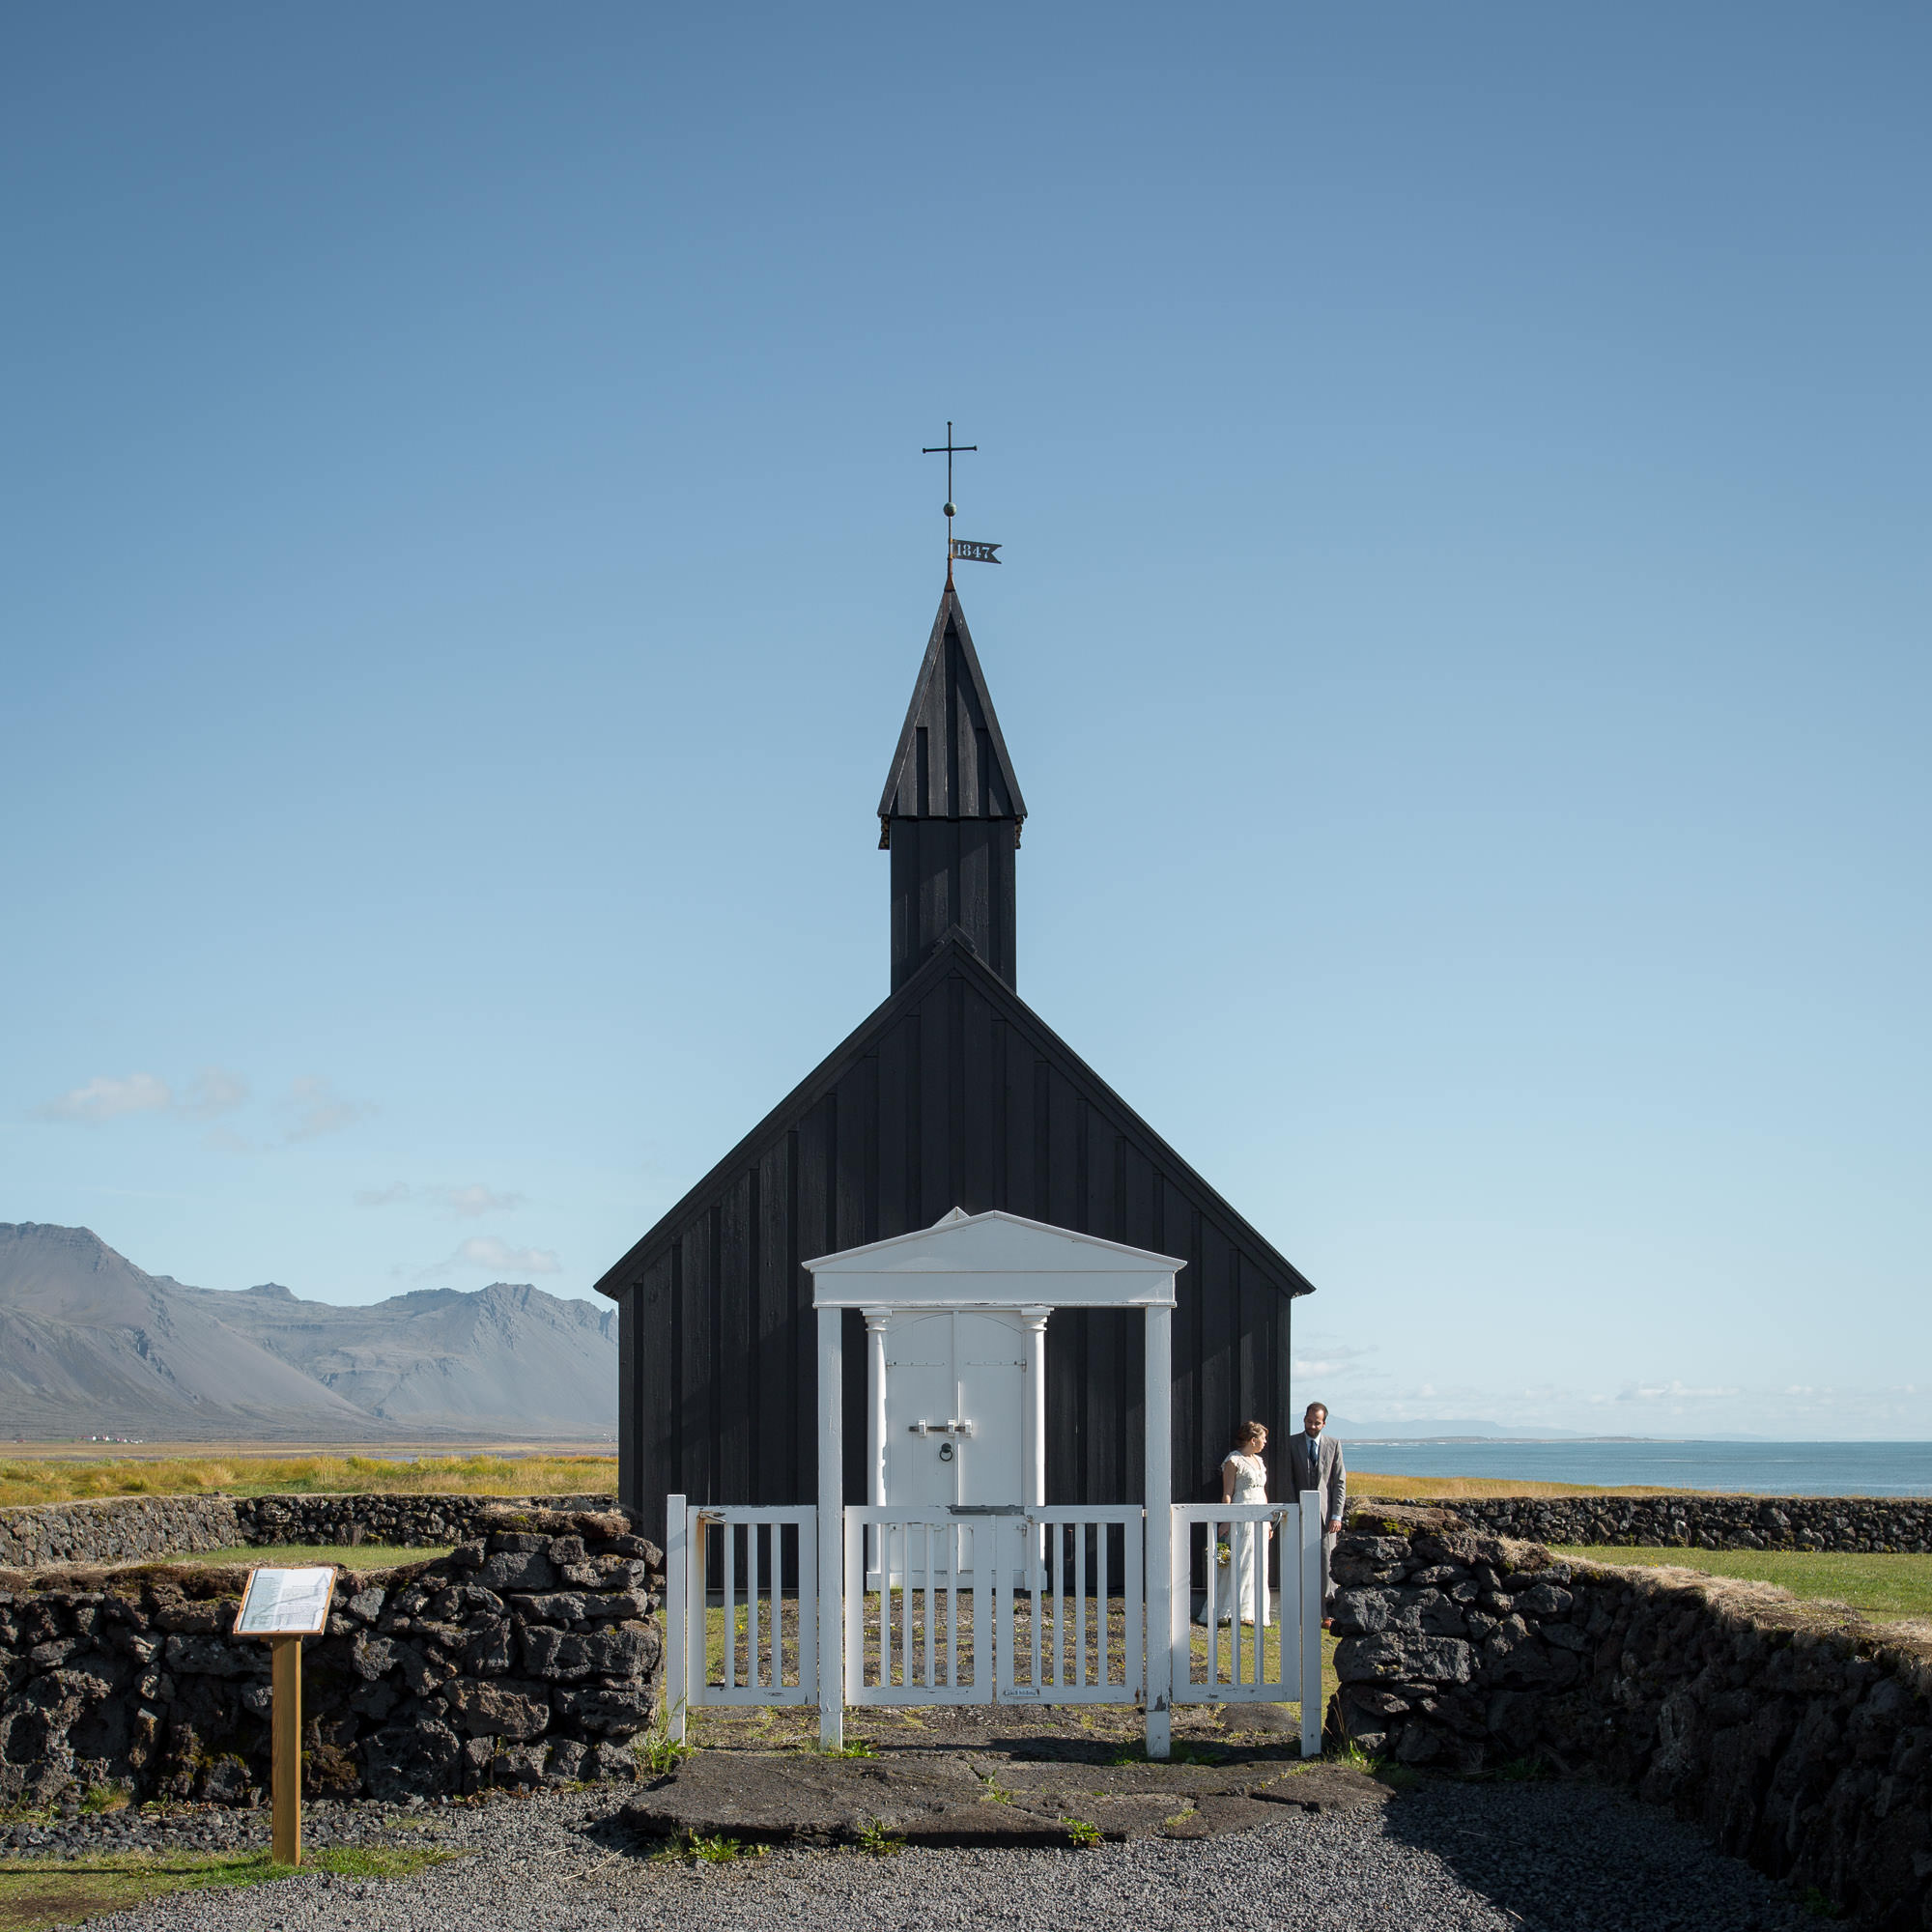 mike-kelley-iceland-architecture-15.jpg